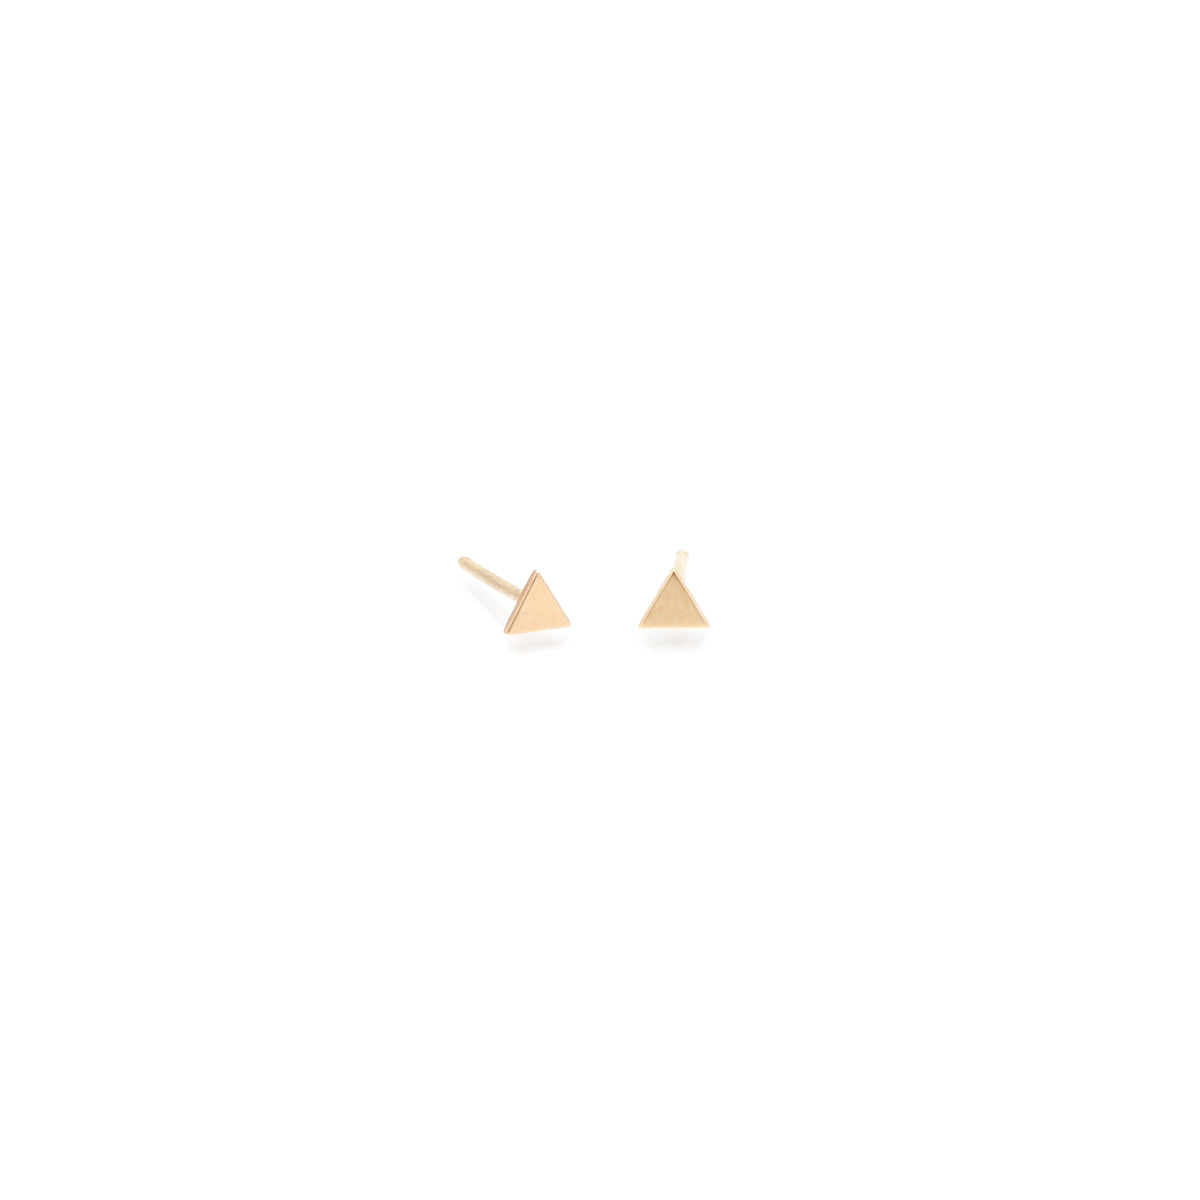 ITTY BITTY TRIANGLE SINGLE STUD